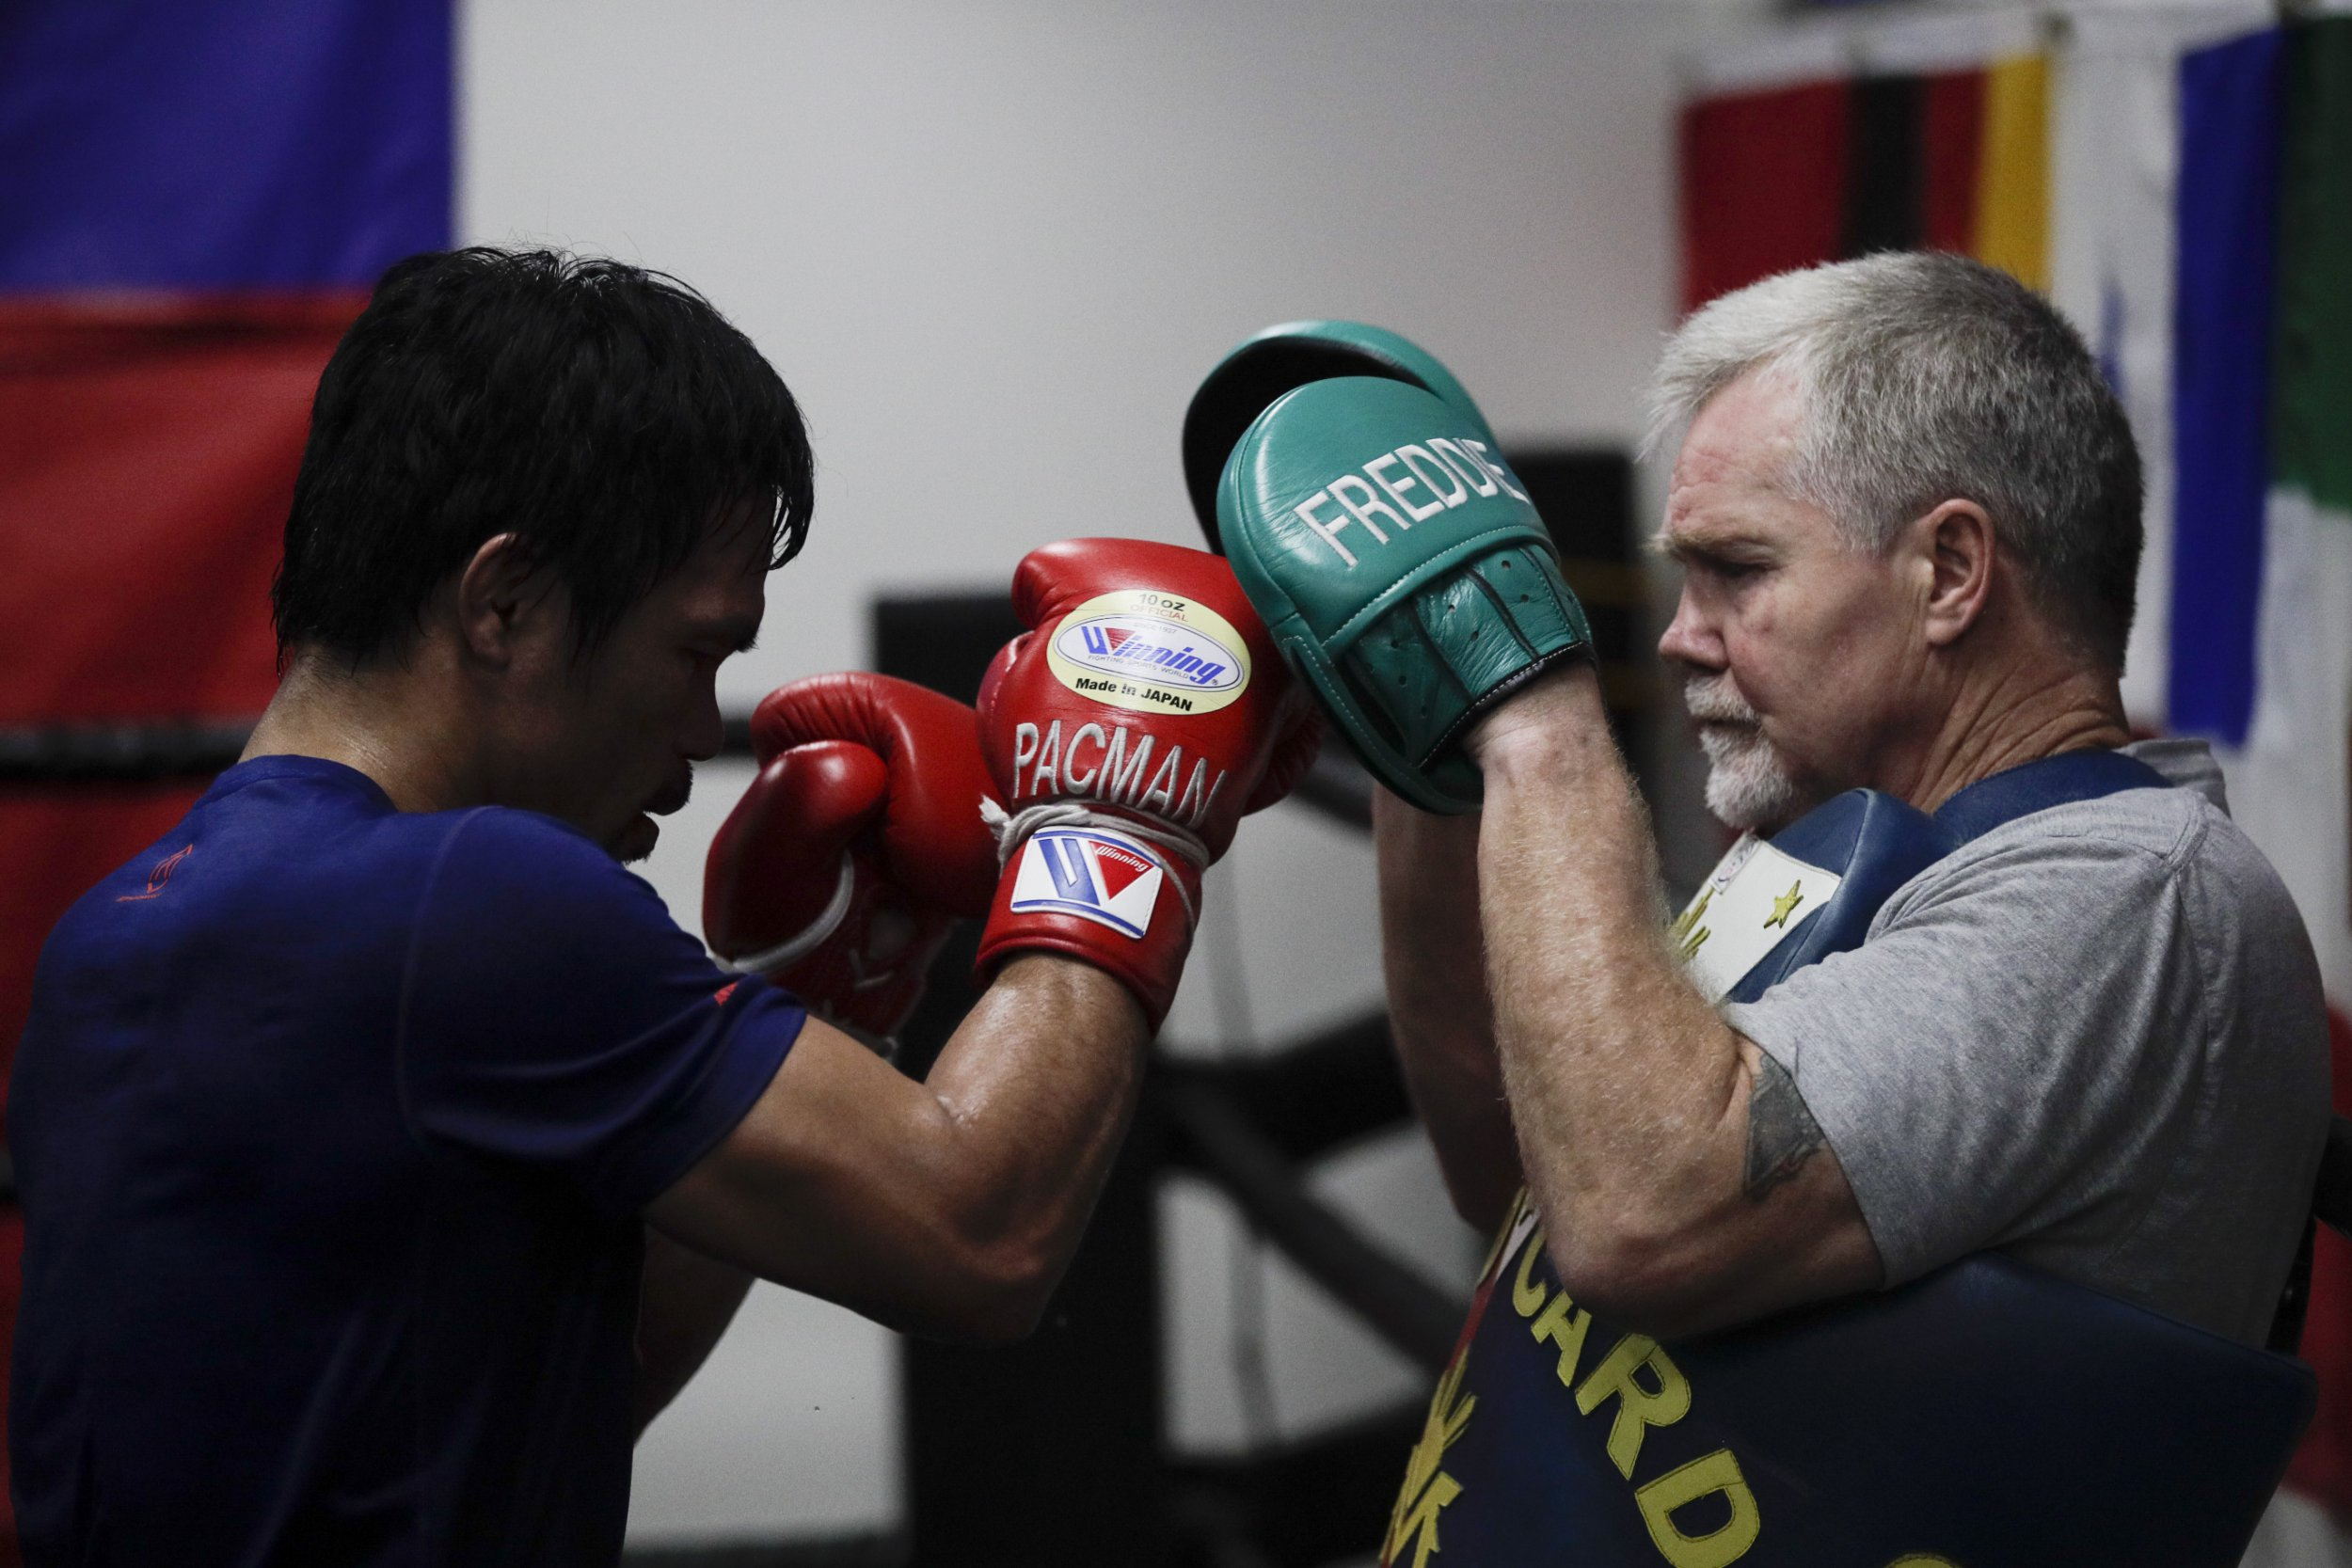 Freddie Roach backs Manny Pacquiao against Floyd Mayweather in potential rematch